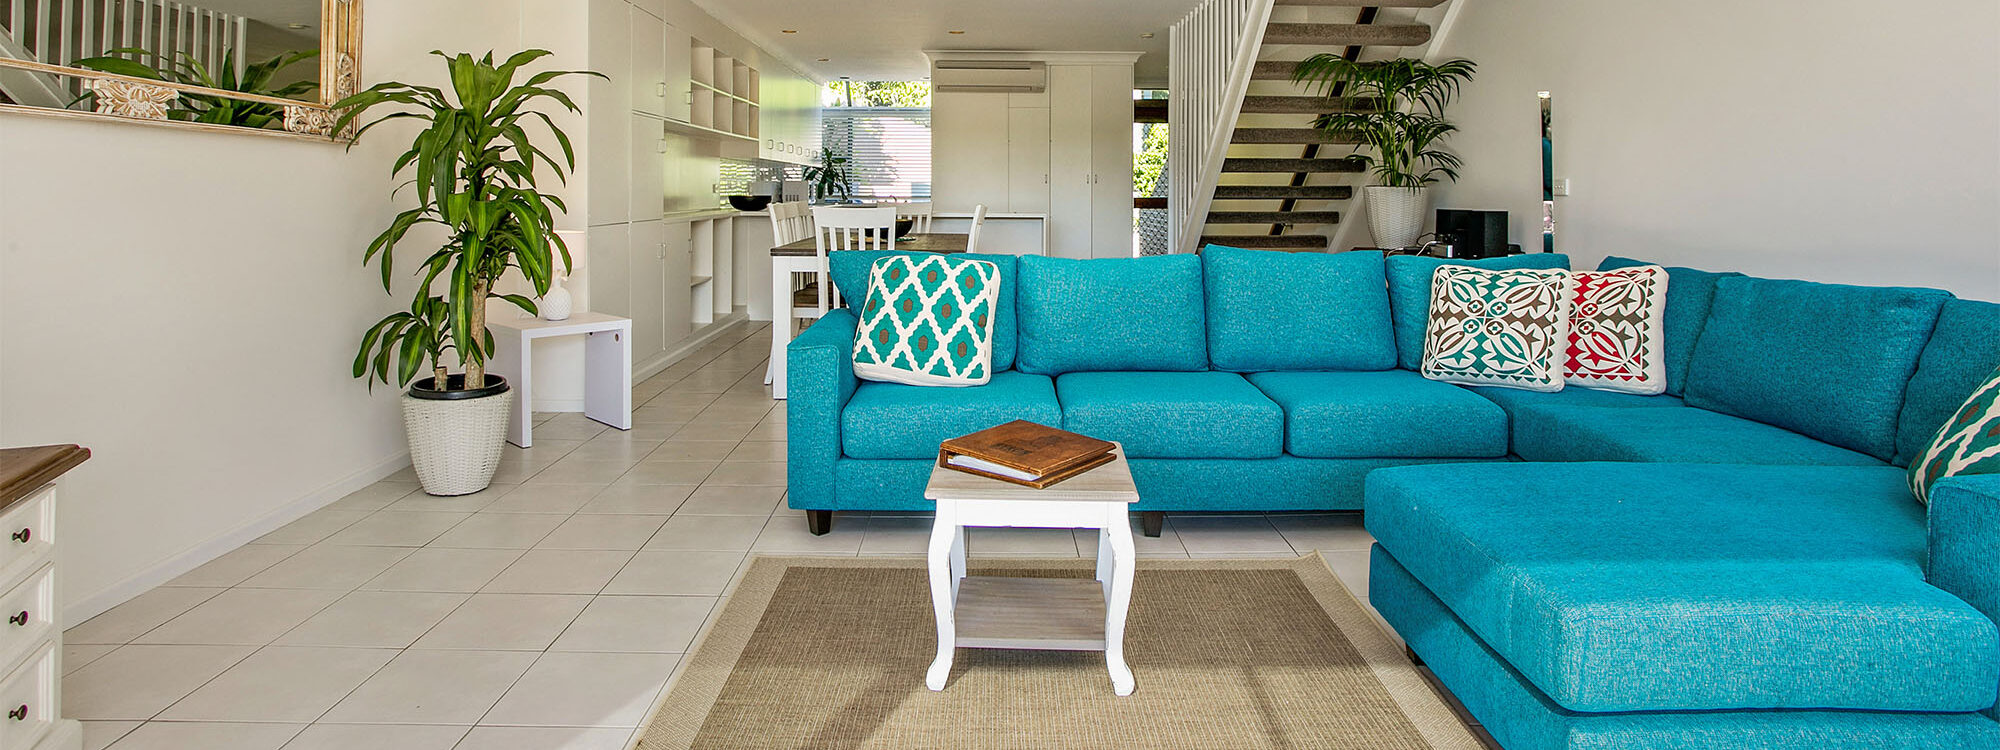 2 James Cook Apartments - Byron Bay - Living Room d